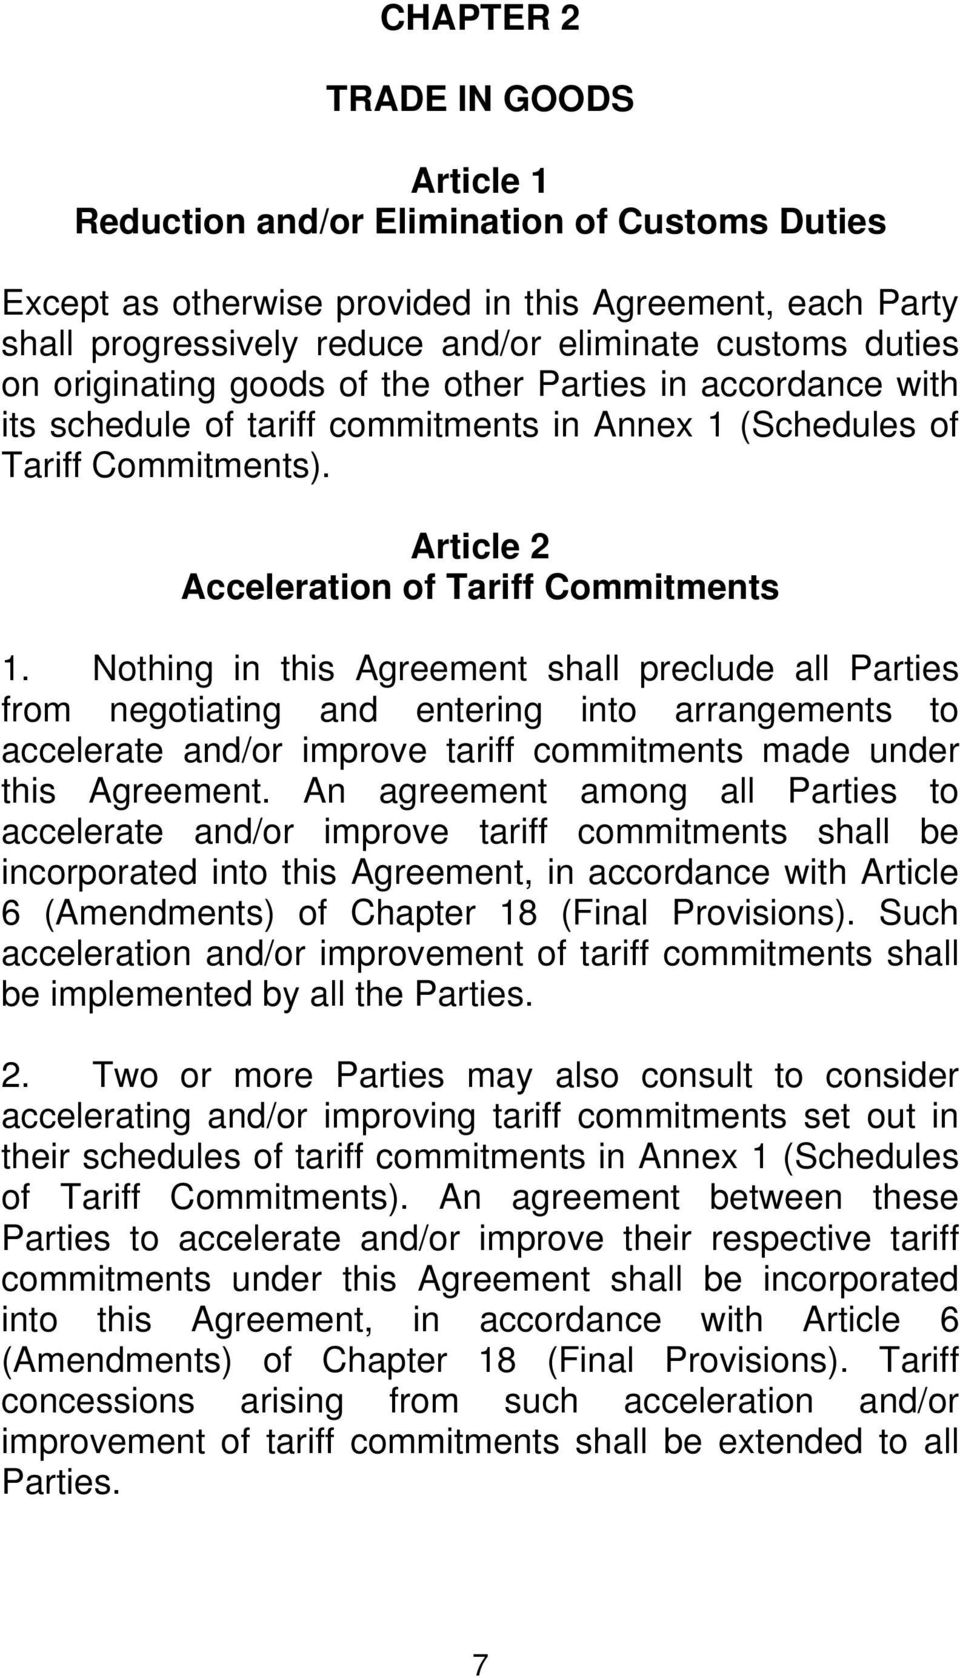 Nothing in this Agreement shall preclude all Parties from negotiating and entering into arrangements to accelerate and/or improve tariff commitments made under this Agreement.